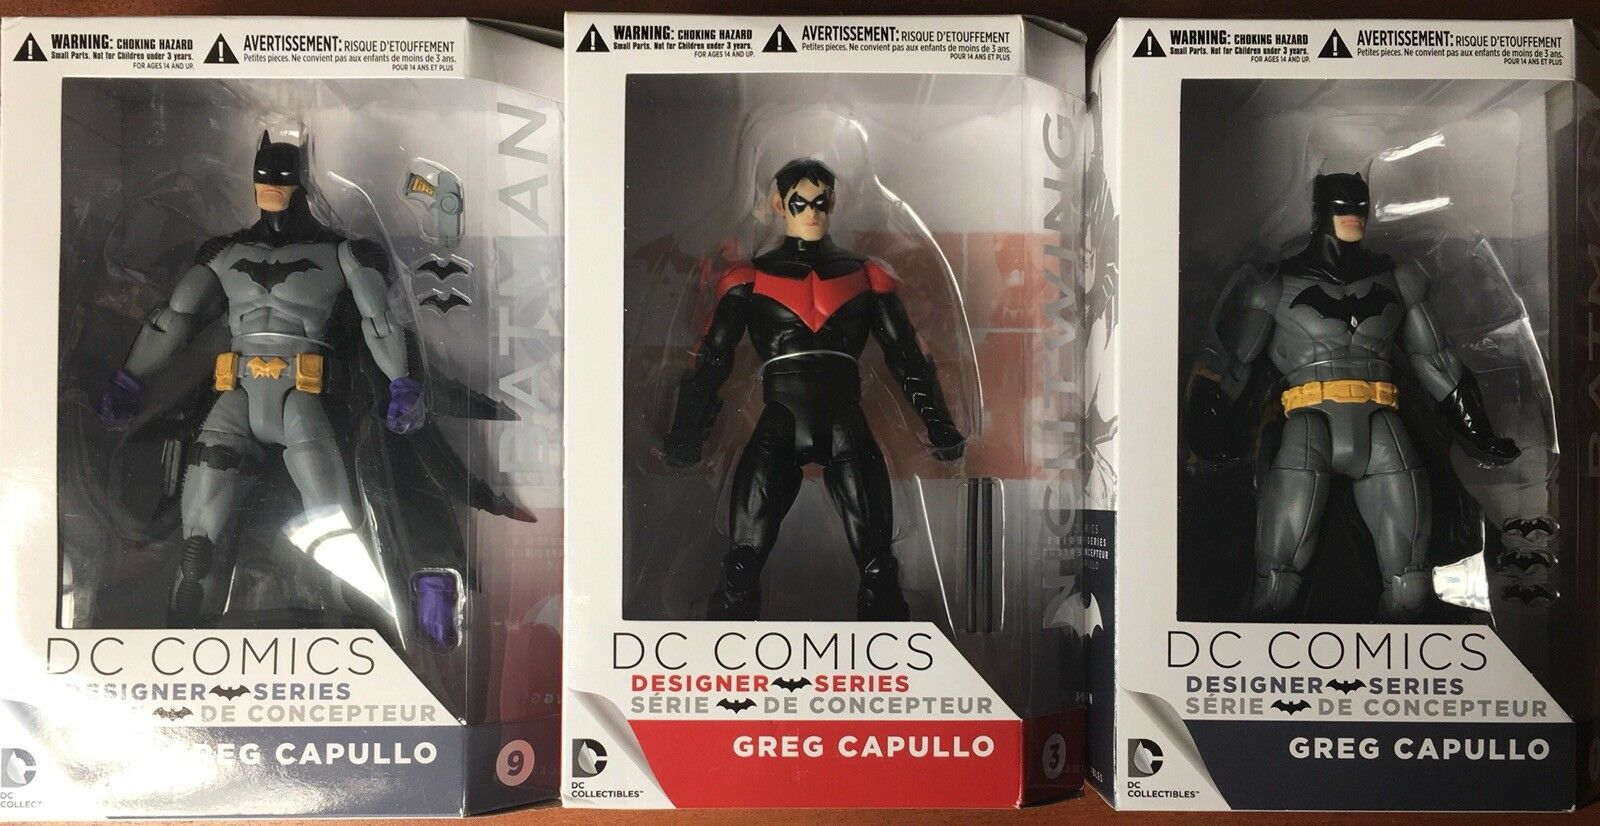 DC COLLECTIBLES GREG CAPULLO DESIGNER SERIES BATMAN FIGURE  1 &  9 + NIGHTWING